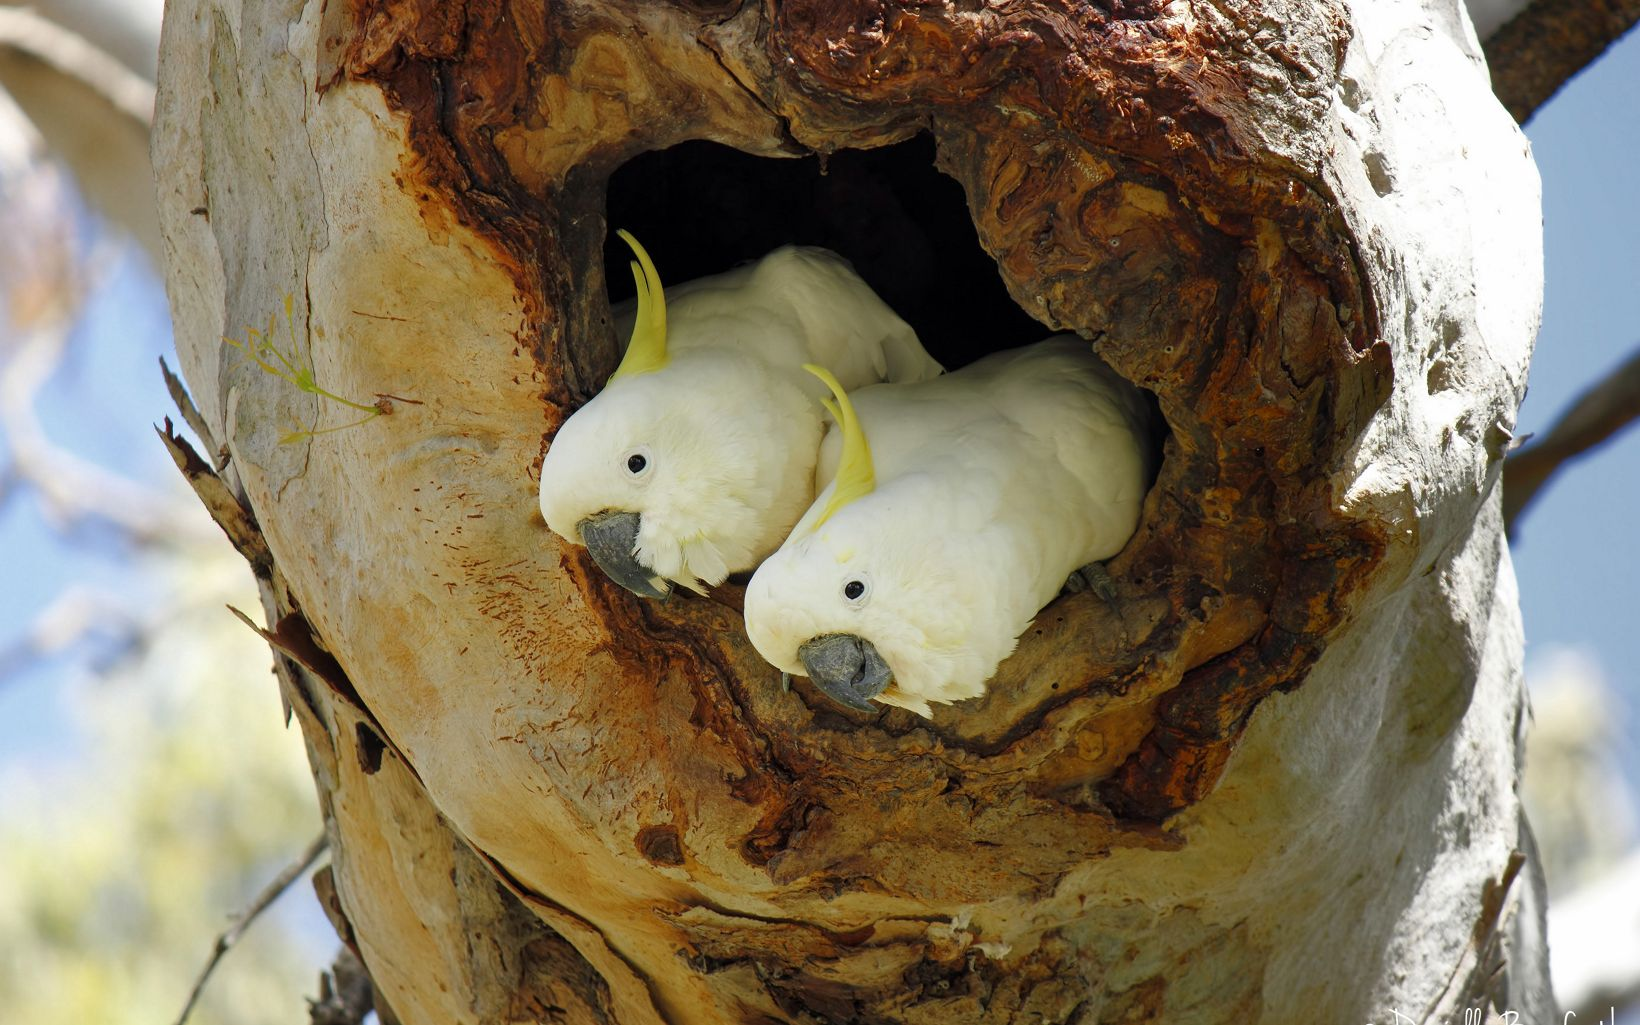 Sulphur-crested Cockatoos, two white birds with small yellow crest, in tree hollow